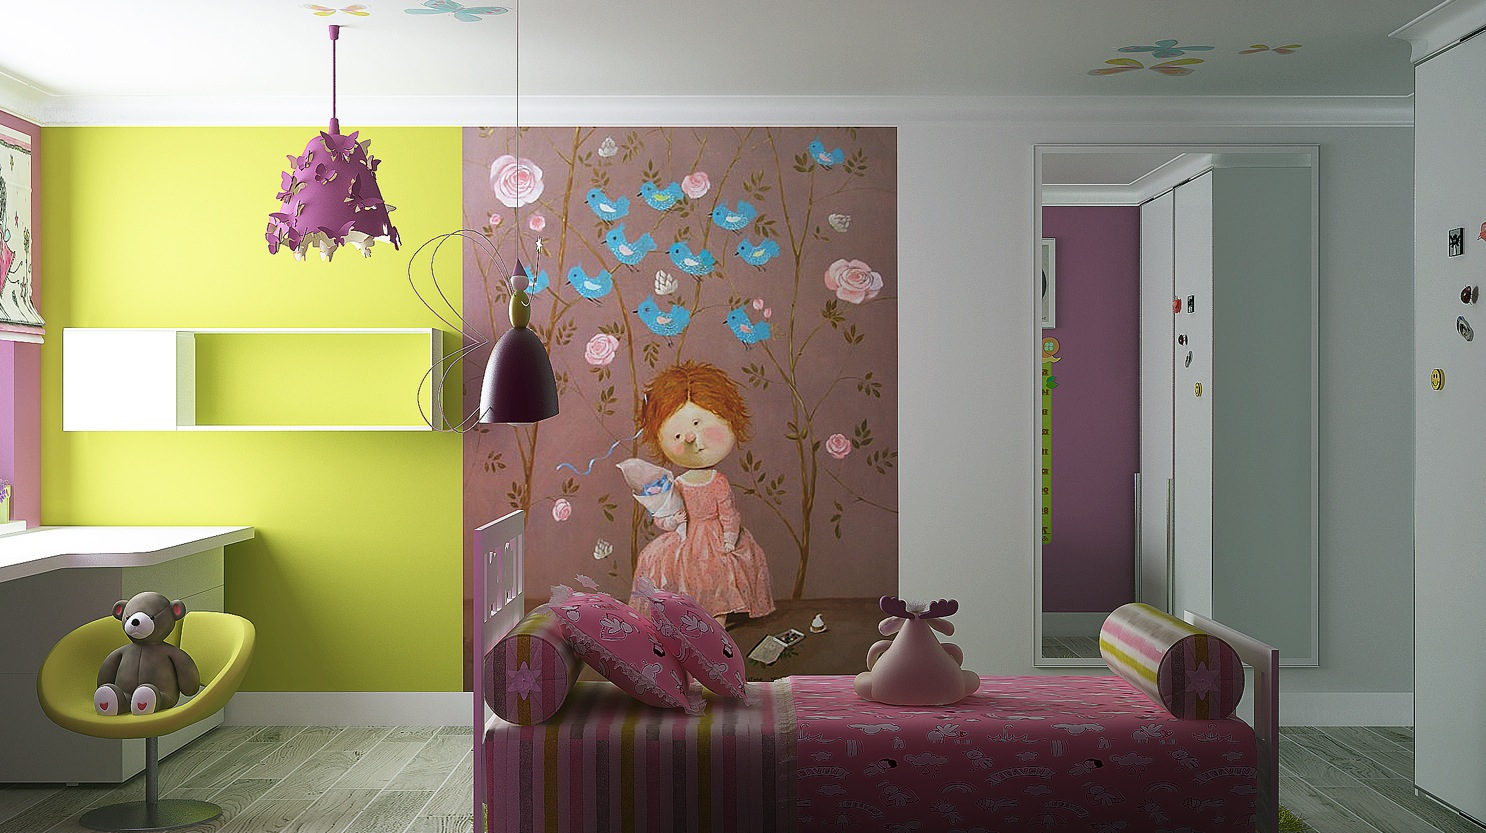 Tero Design wall decor for girls room. Girls Room Designs With Creative Ideas and Soft Color Decor Bring